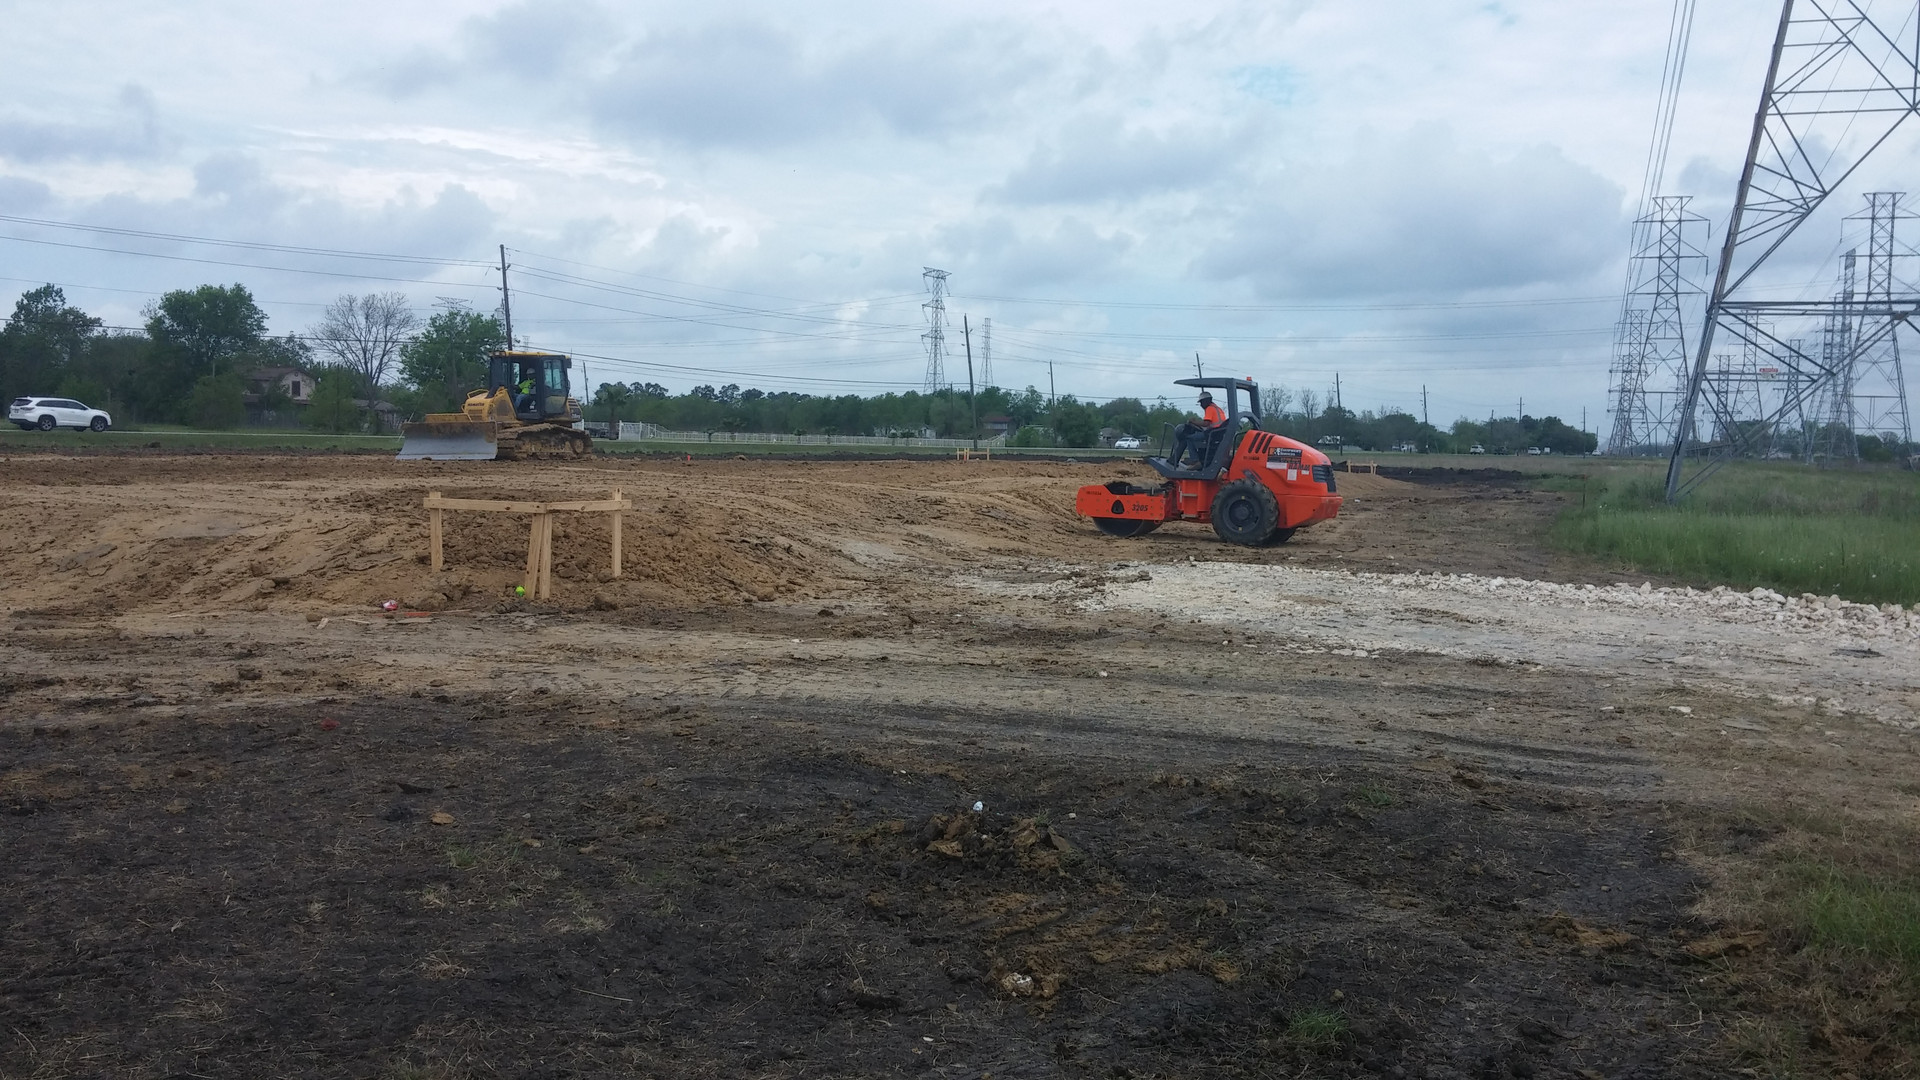 pad site with roller and dozer in distance